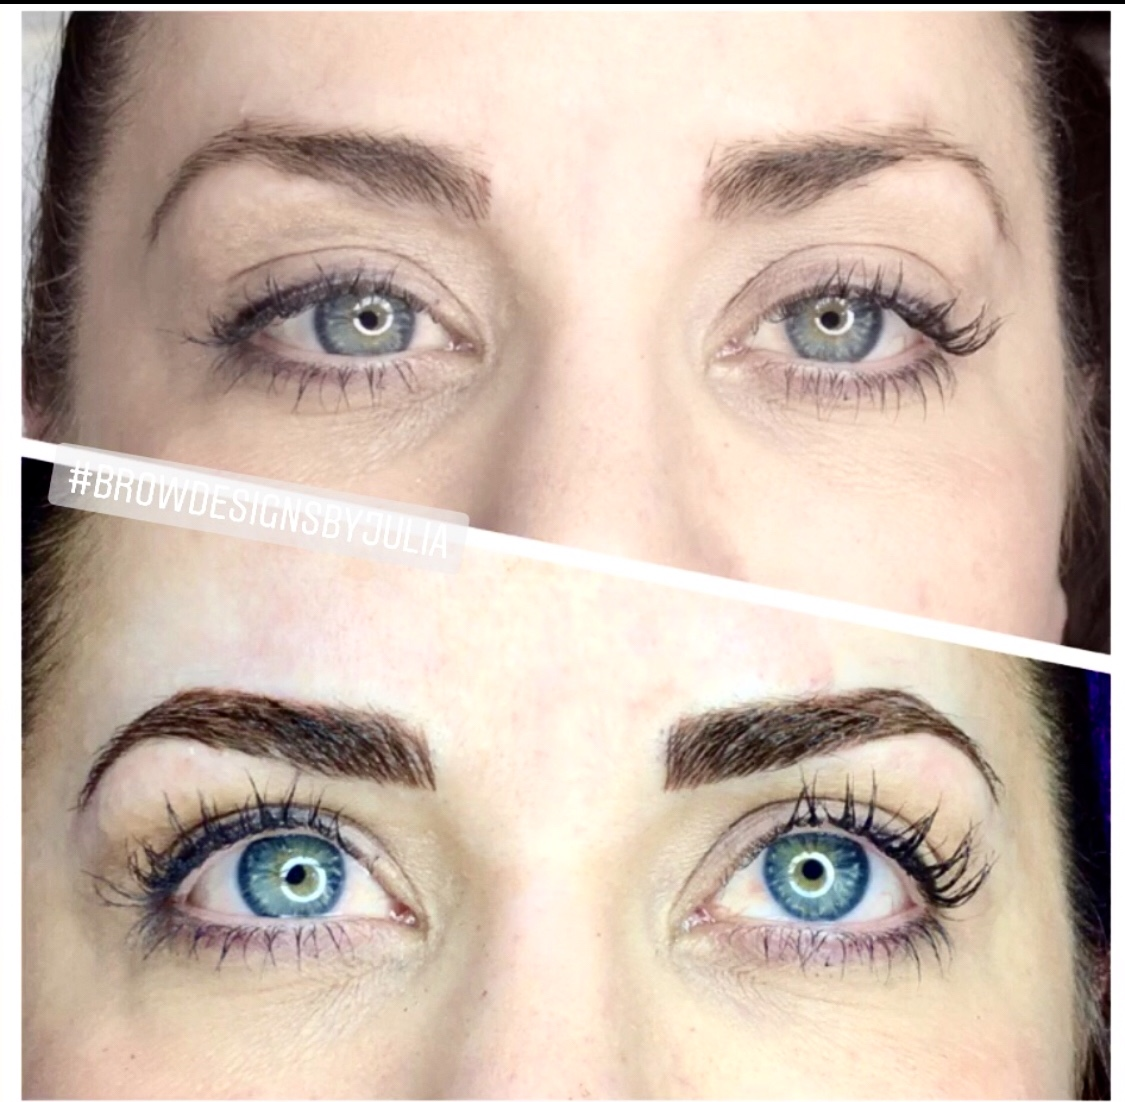 Home | Microblading Services